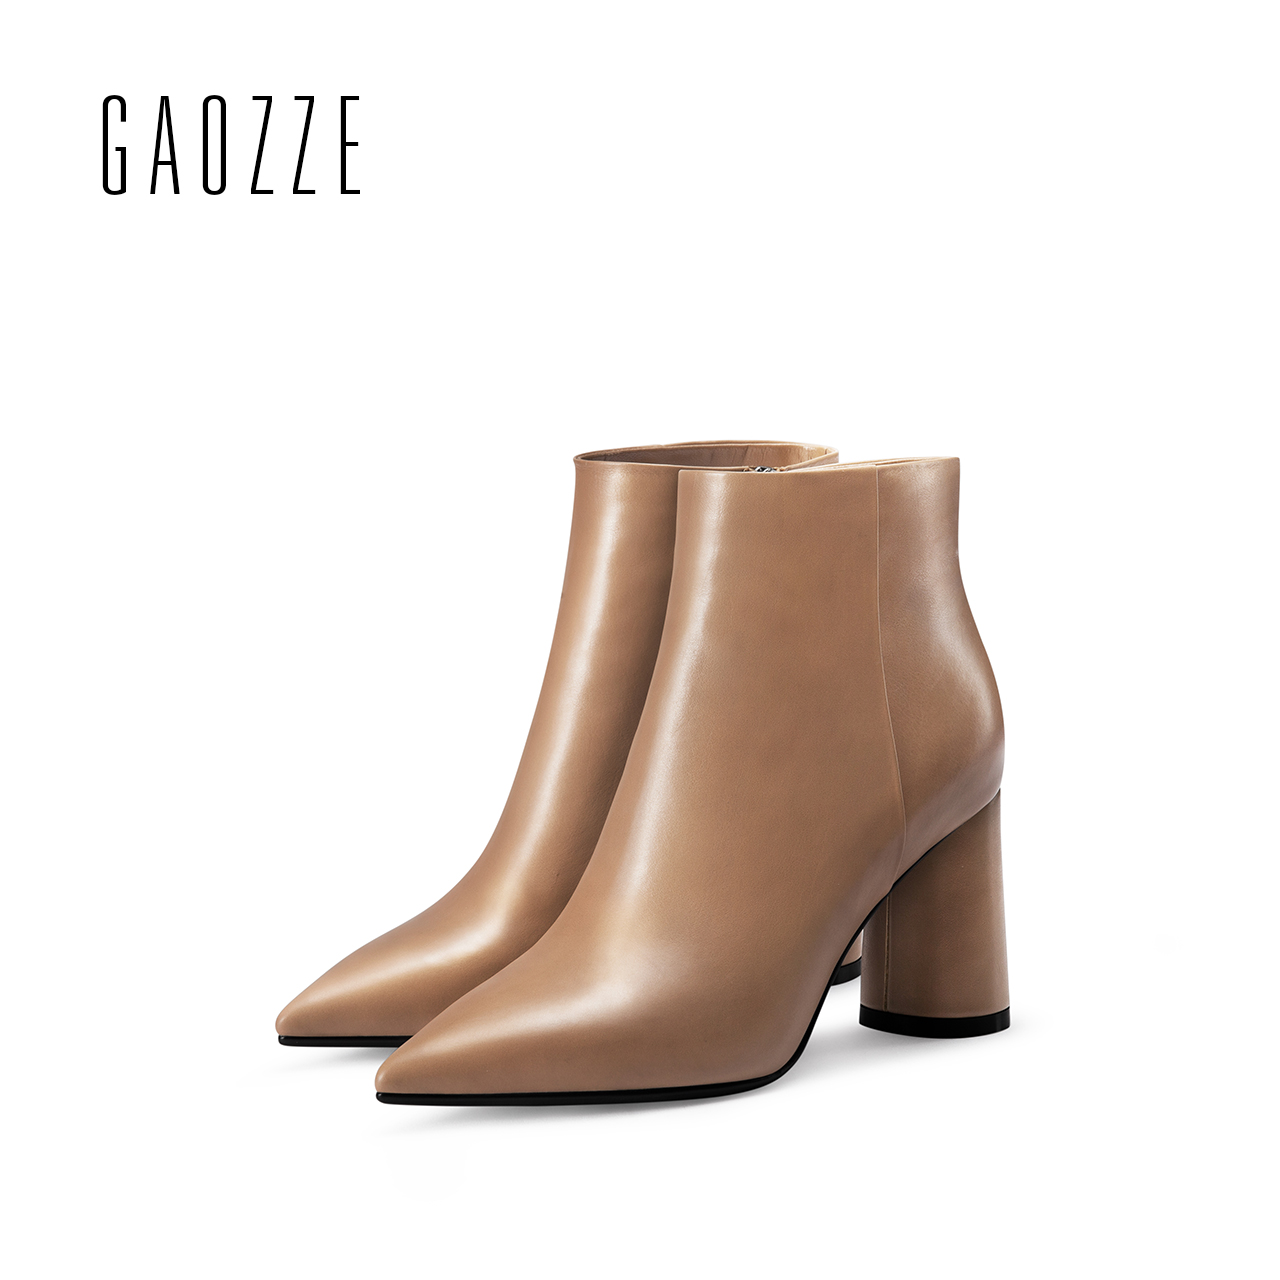 GAOZZE Thick heel women boots high-heeled genuine leather ankle boots for women pointed toe side zipper female boots 2017 autumn 2018 autumn new style genuine leather ankle boots pointed toe thick heel chelsea boots calf leather women boots ladies shoes